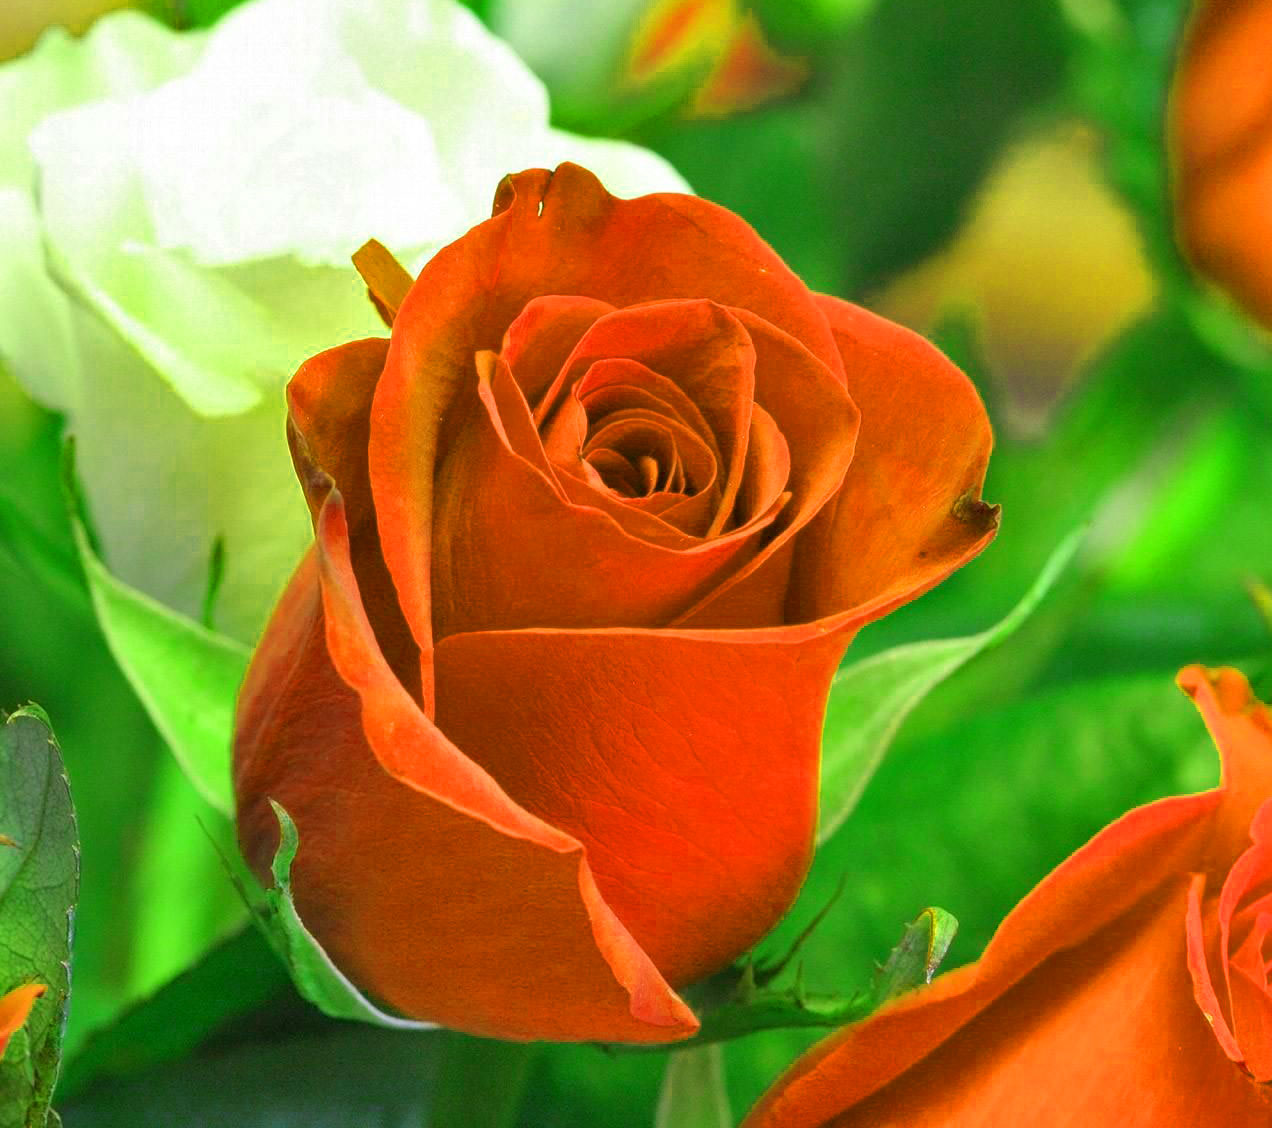 Red Rose Beautiful Flower Images for Whatsapp DP Pics